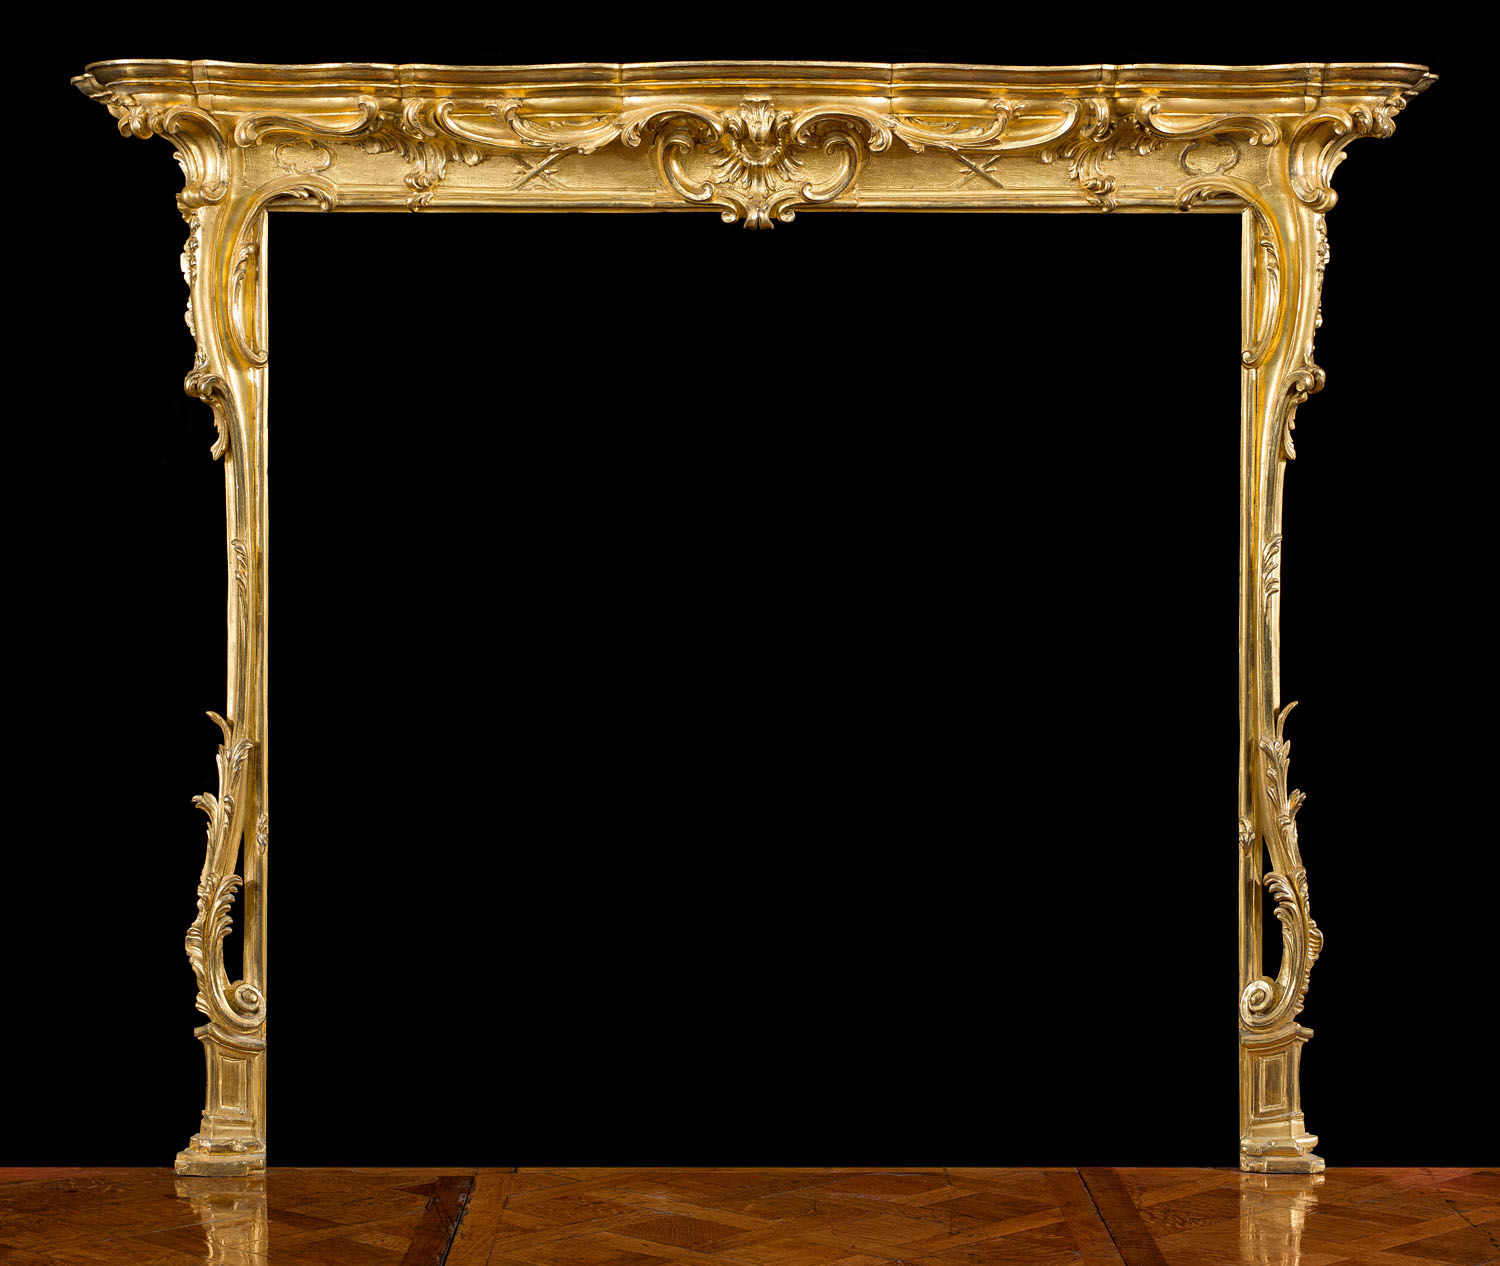 Antique English 18th century Giltwood Rococo style carved Chimneypiece